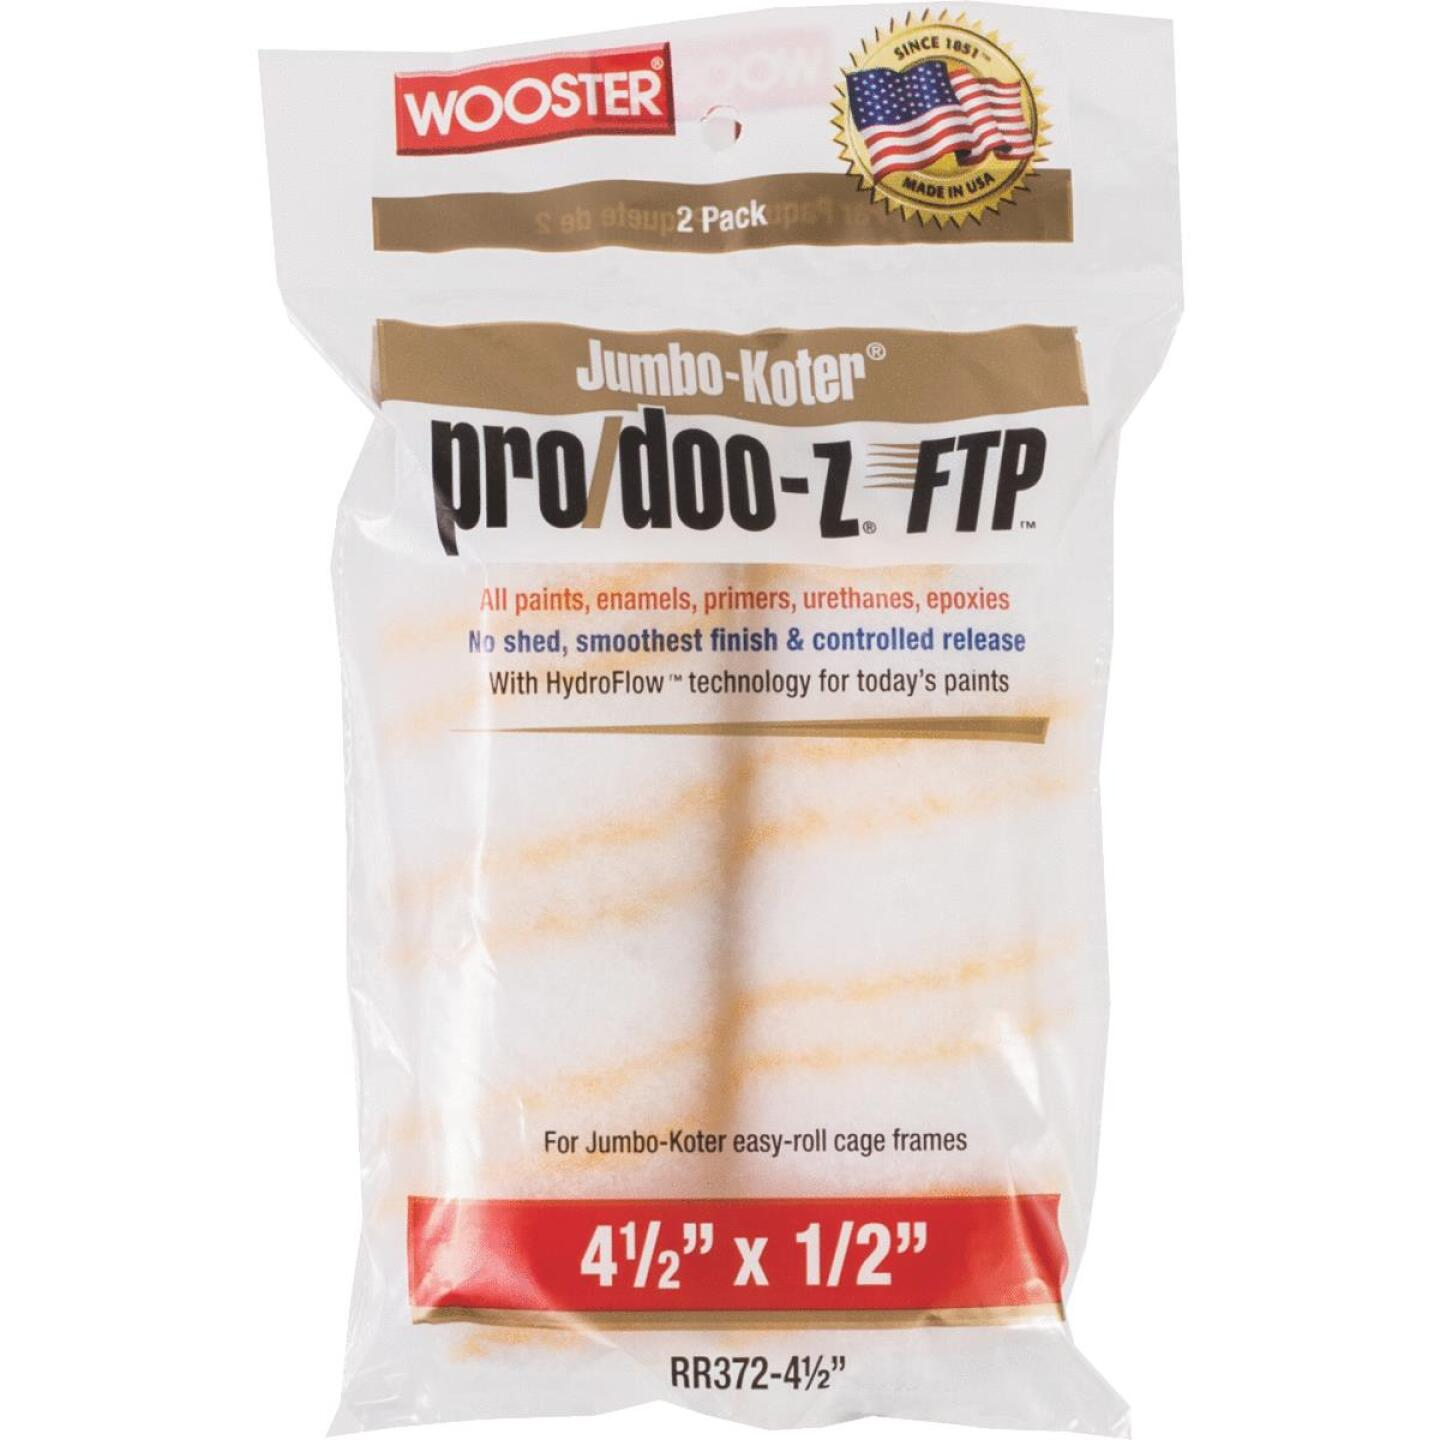 Wooster Jumbo-Koter Pro/Doo-Z FTP 4-1/2 In. x 1/2 In. Mini Woven Fabric Roller Cover (2 Pack) Image 1